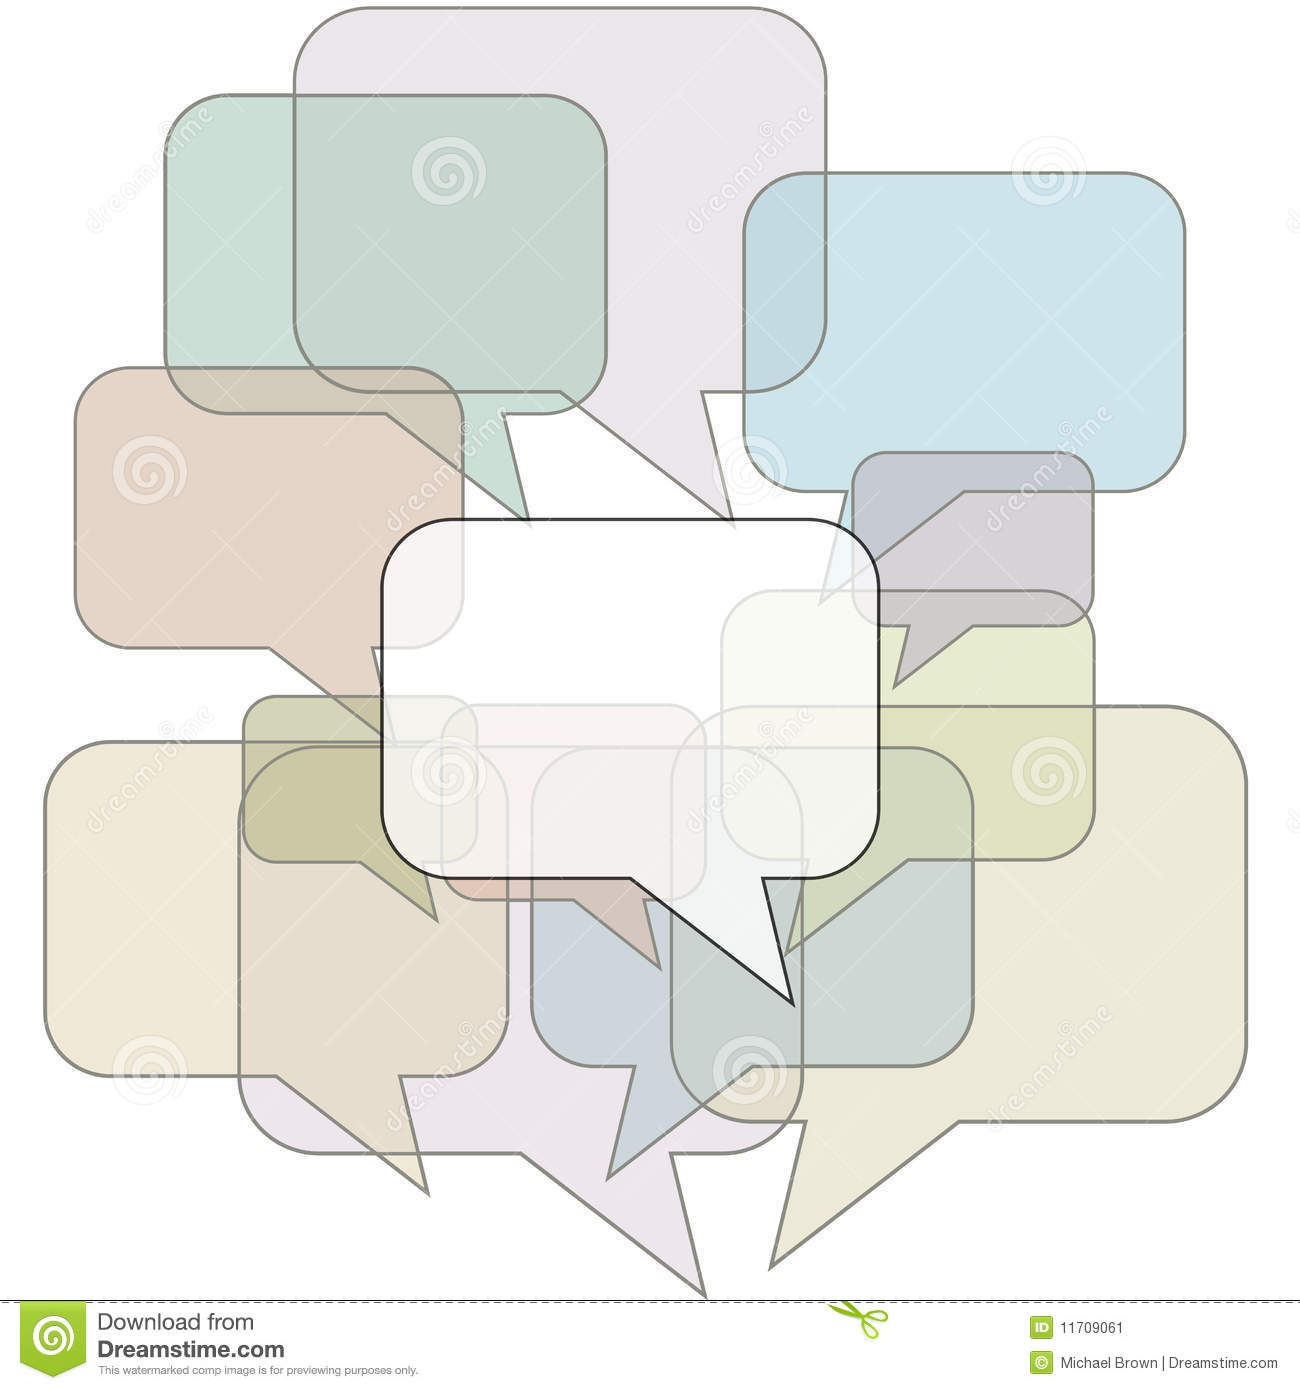 Speech Bubble Outlines In Communication Background Stock Image - Image